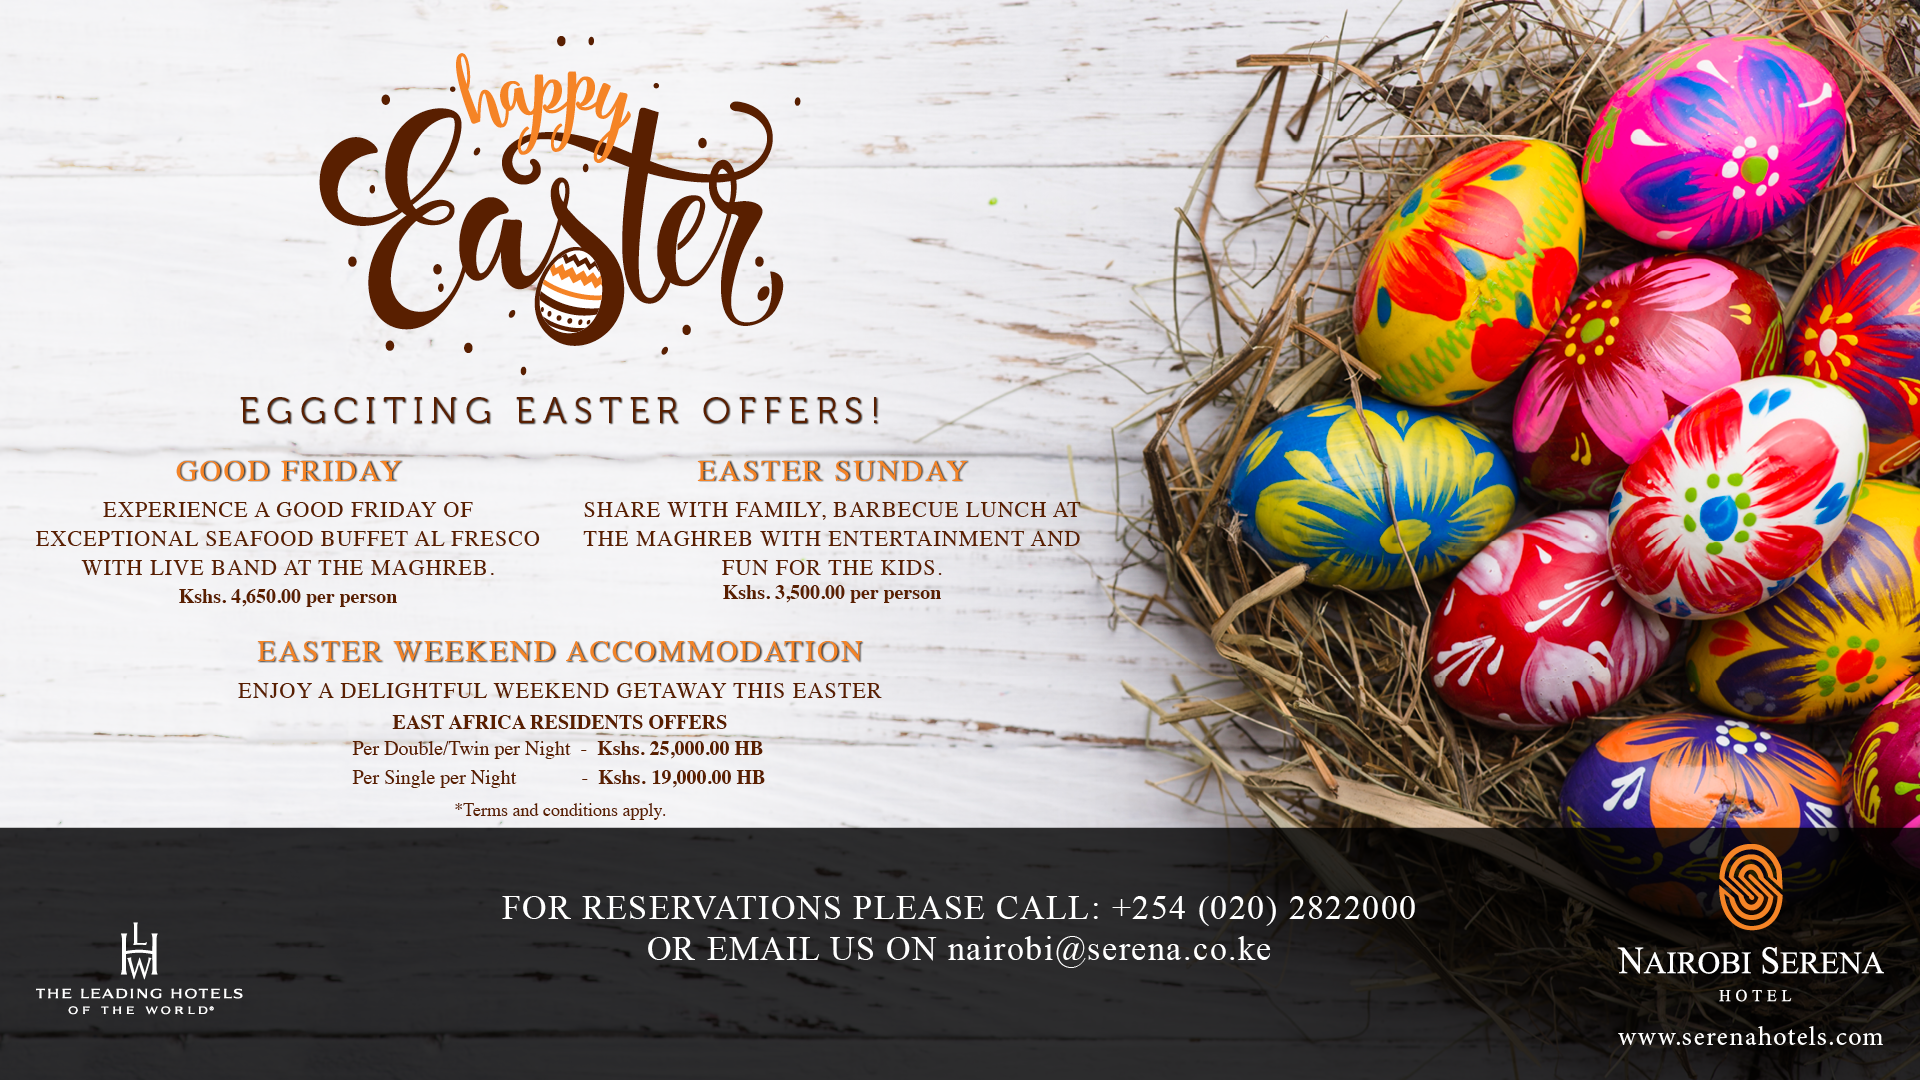 Enjoy the Easter goodies at the Nairobi Serena Hotel